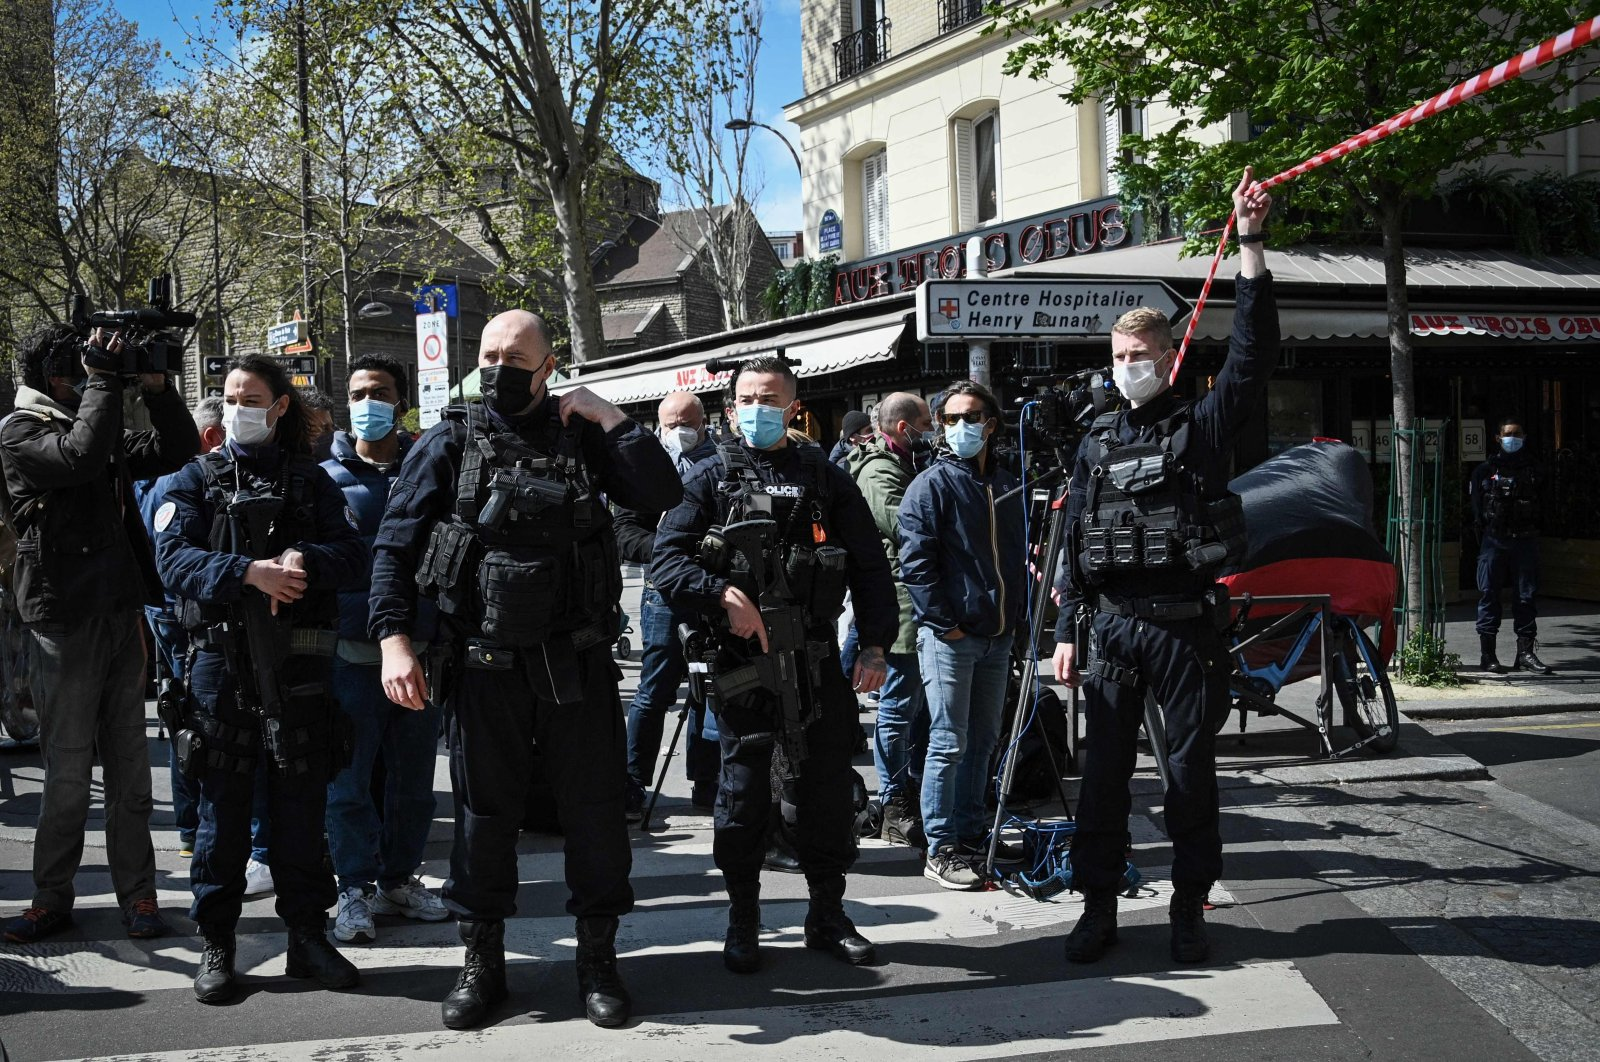 French police cordon off the area near the Henry Dunant private hospital where one person was killed and another injured in a shooting outside the institution owned by the Red Cross in Paris' upmarket 16th district, Paris, France, April 12, 2021. (AFP Photo)